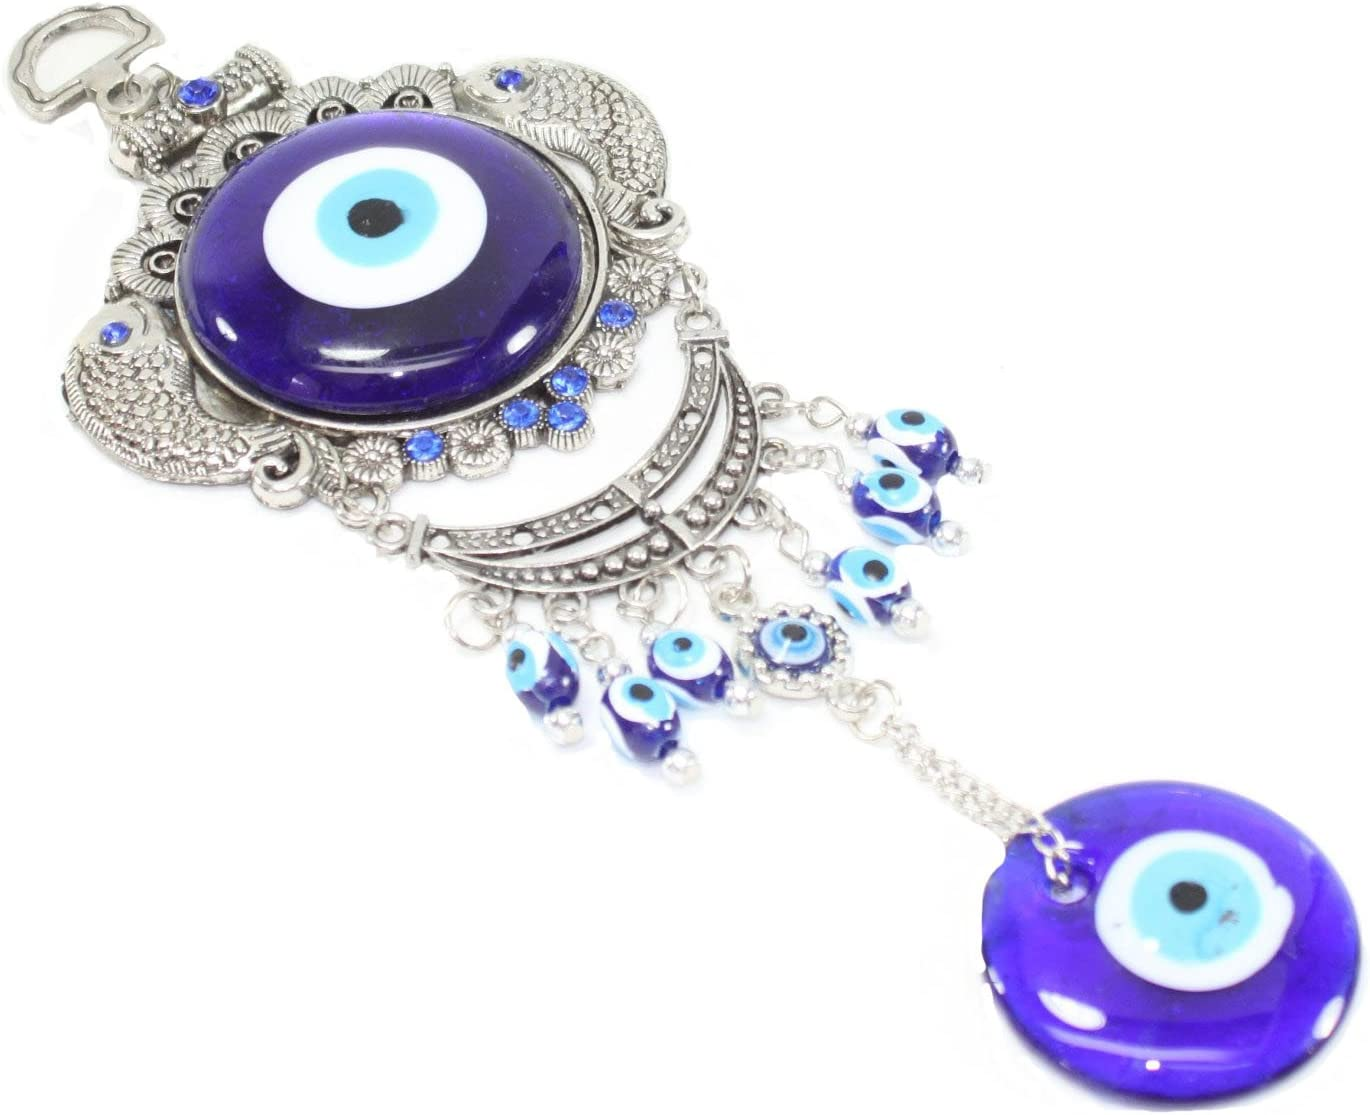 Turkish Blue Evil Eye (Nazar) Carps Fish Amulet Wall Hanging Protection Home Decor Blessing Gift